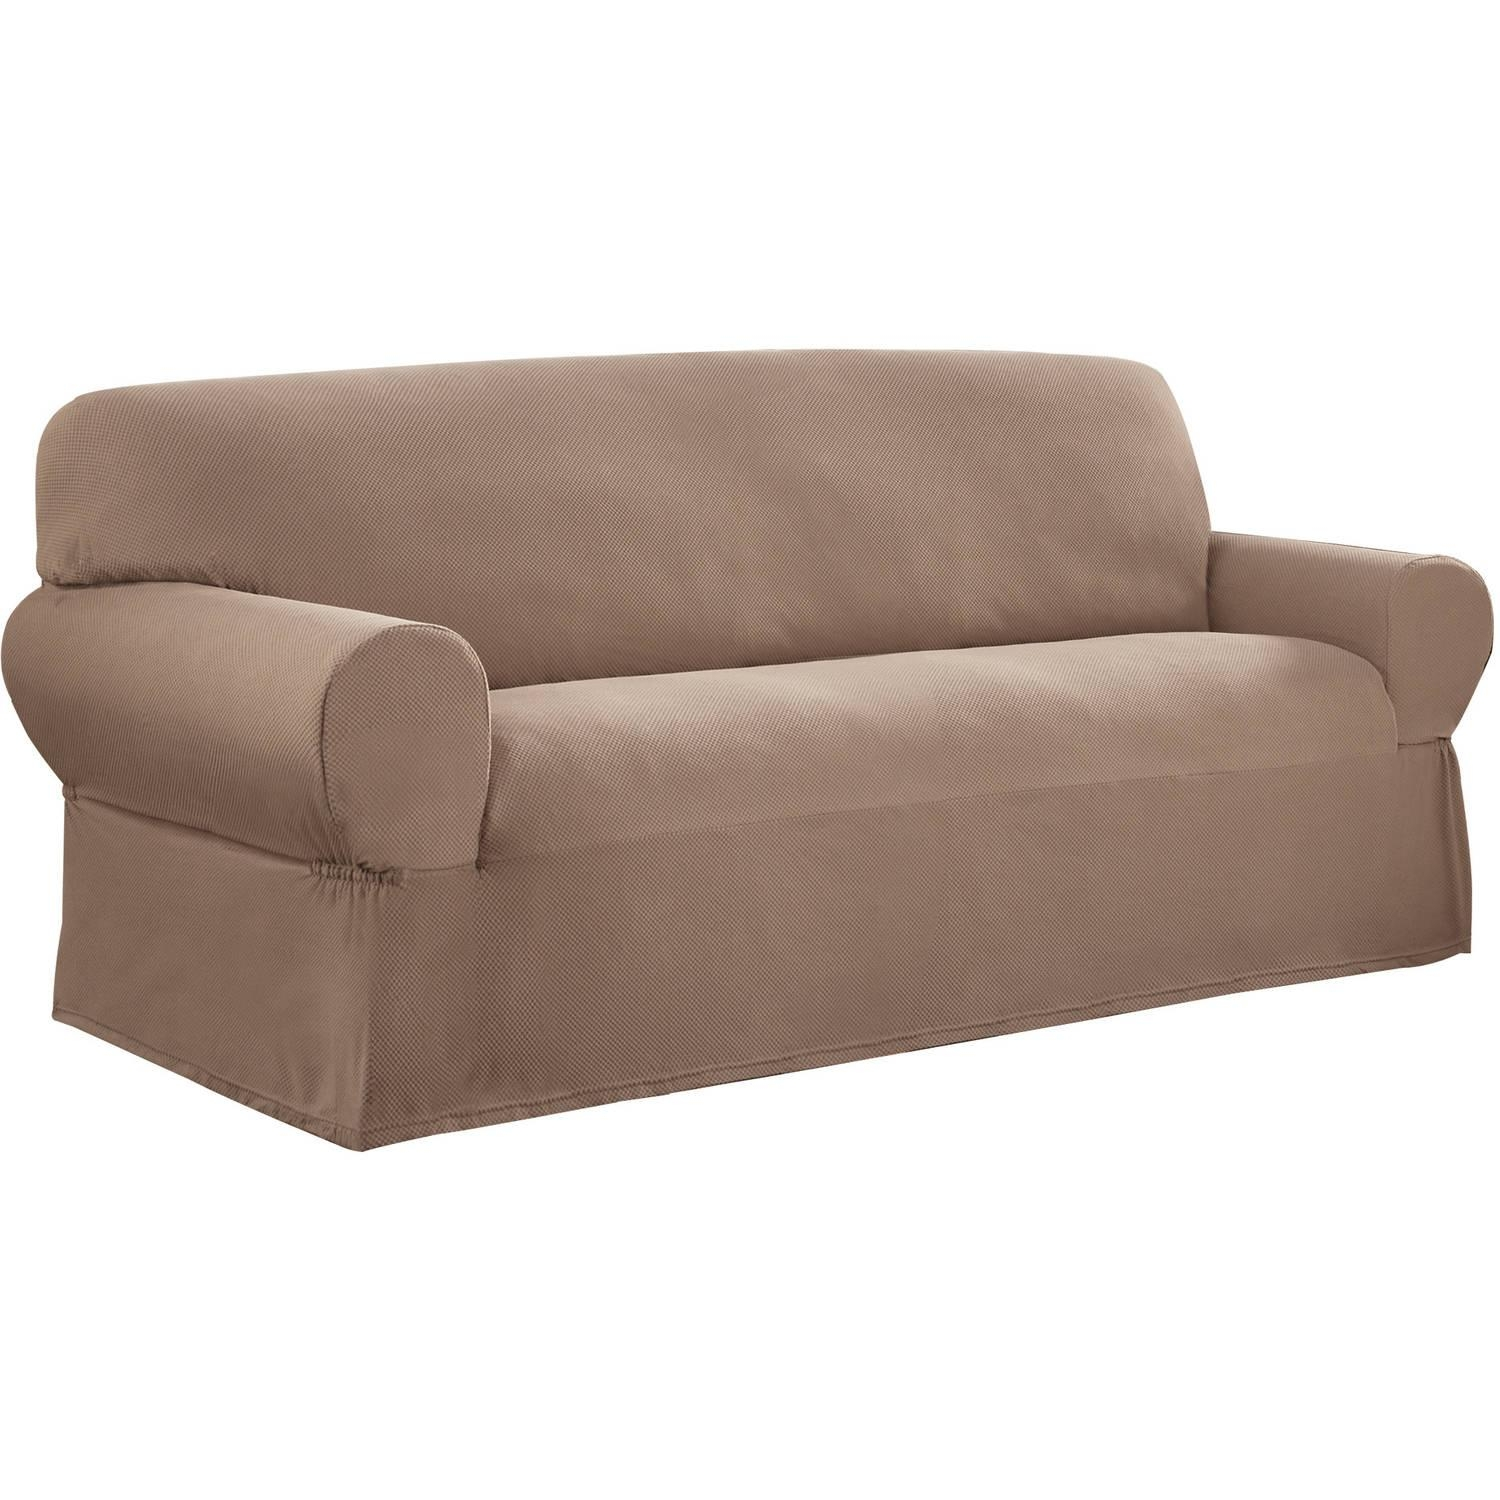 Slipcovers – Walmart Inside Covers For Sofas And Chairs (Image 14 of 20)